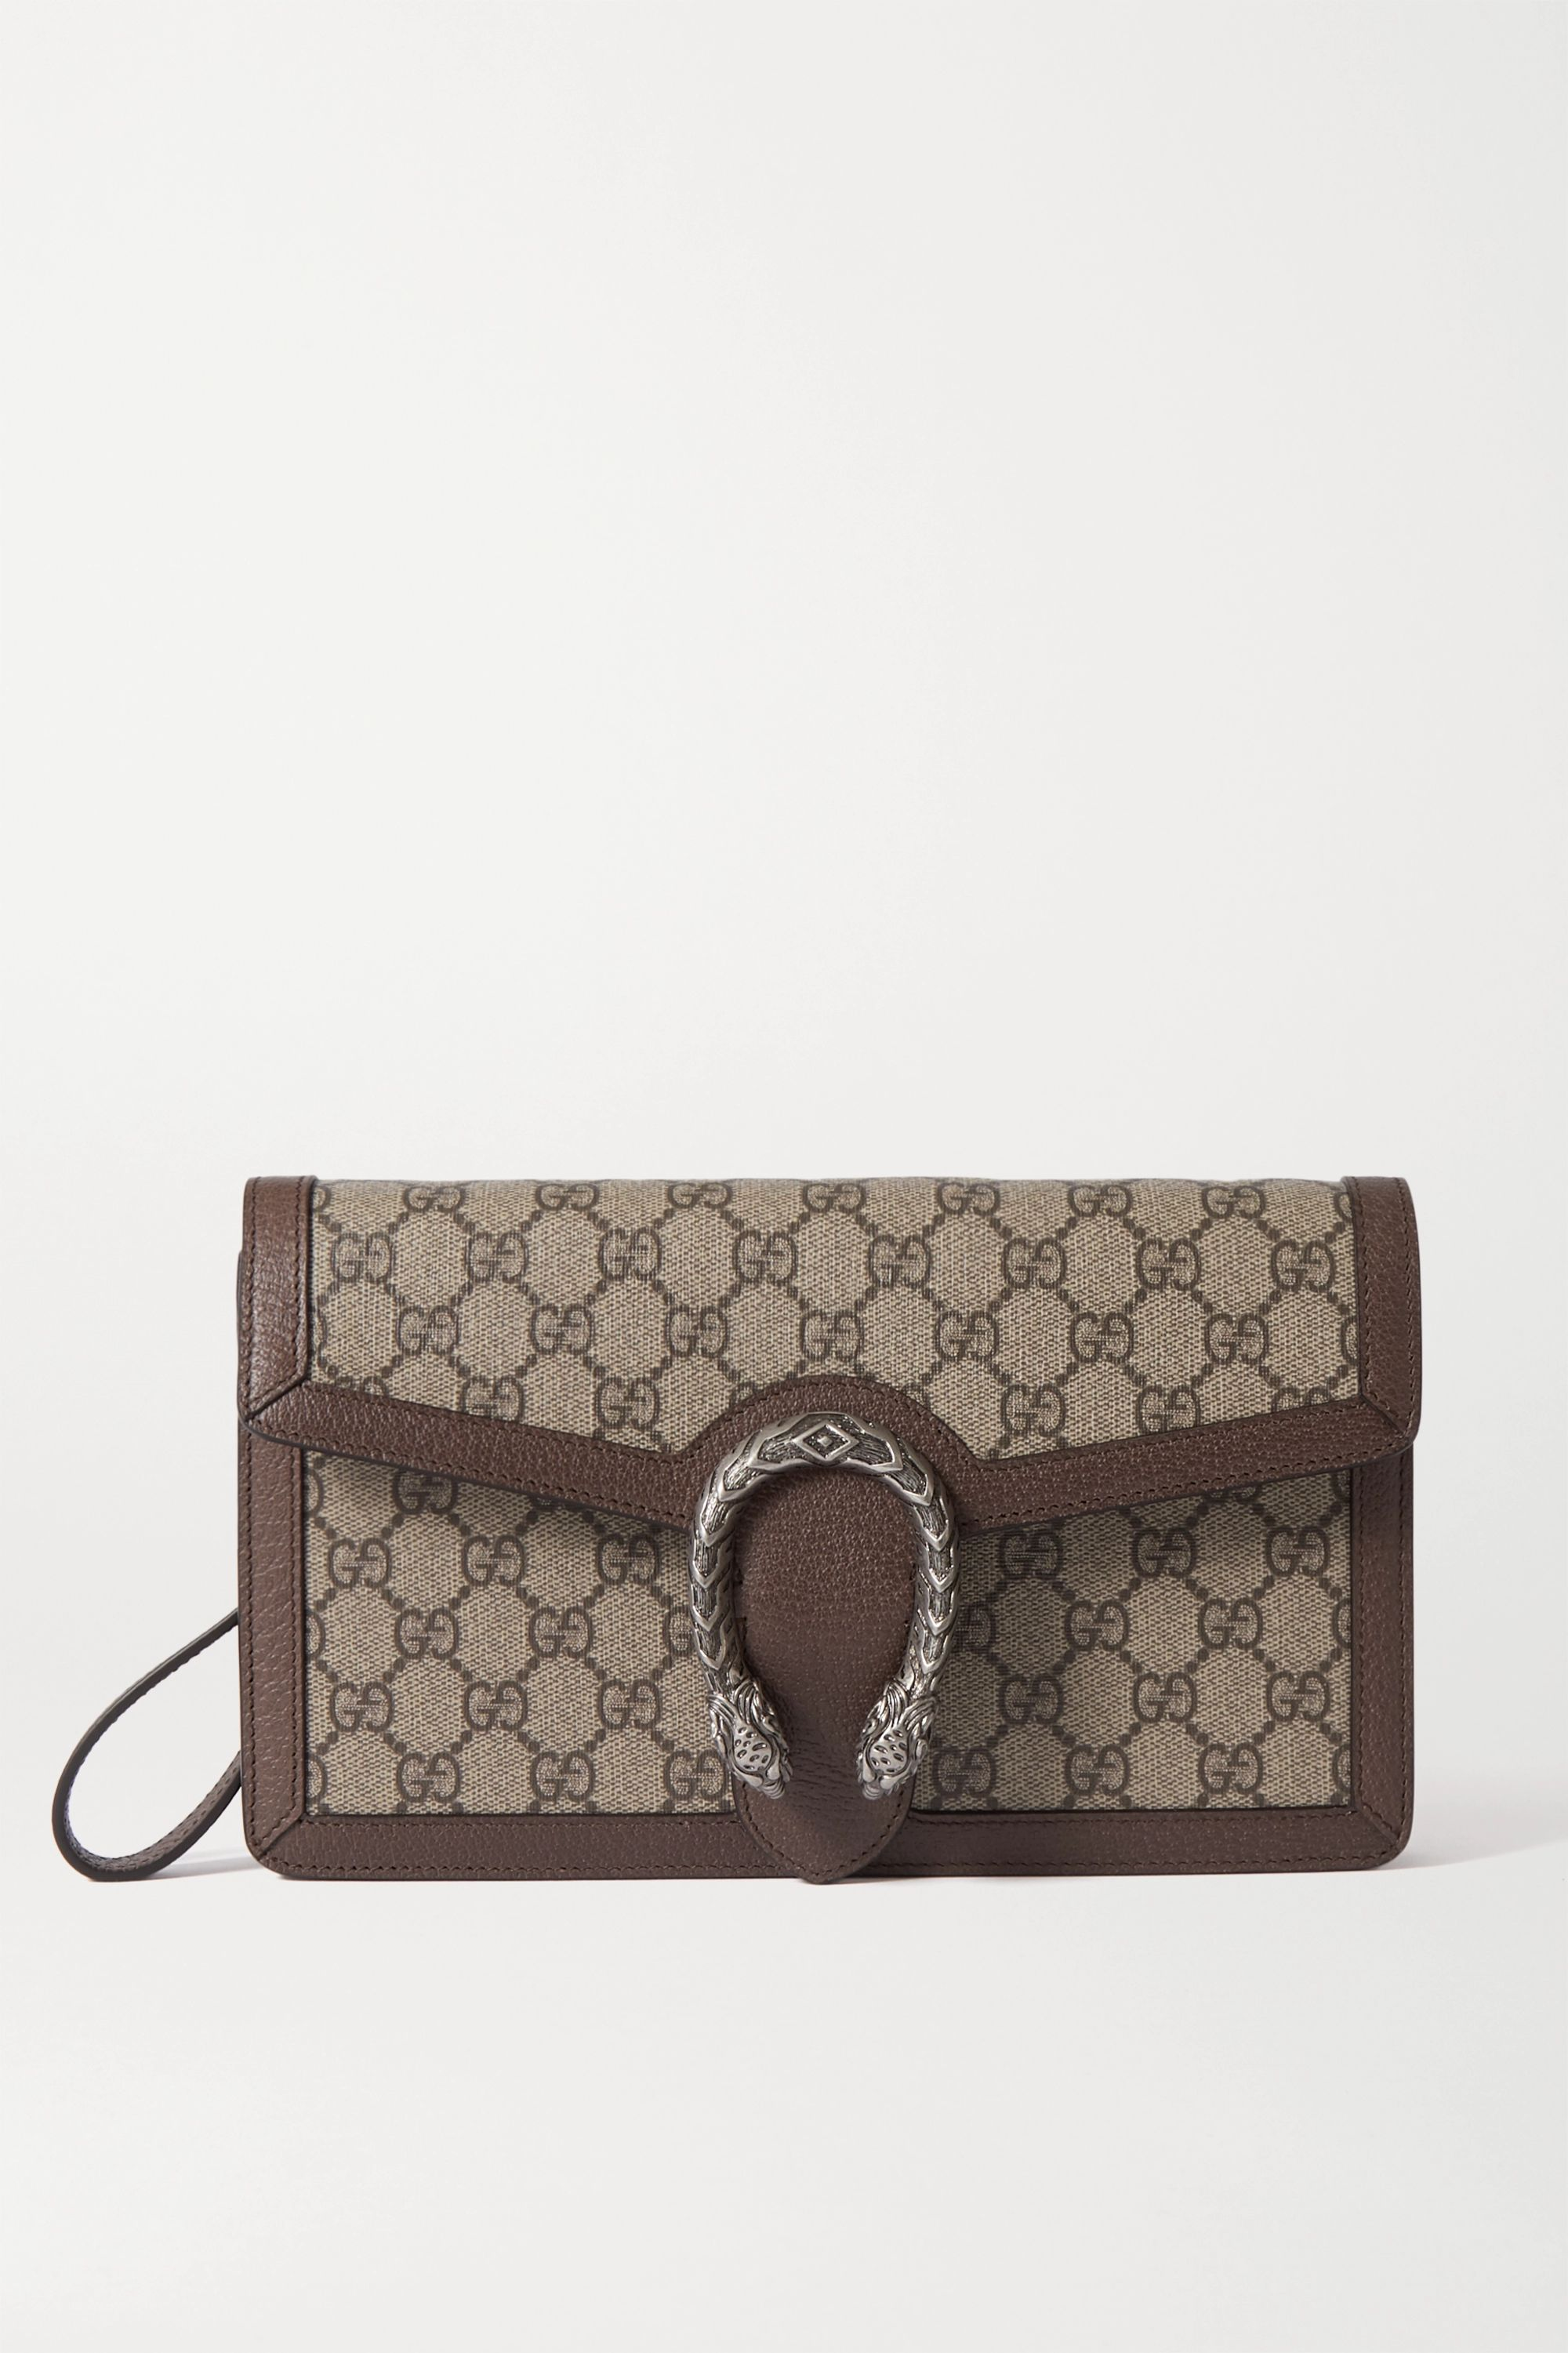 Gucci Dionysus textured leather-trimmed printed coated-canvas clutch